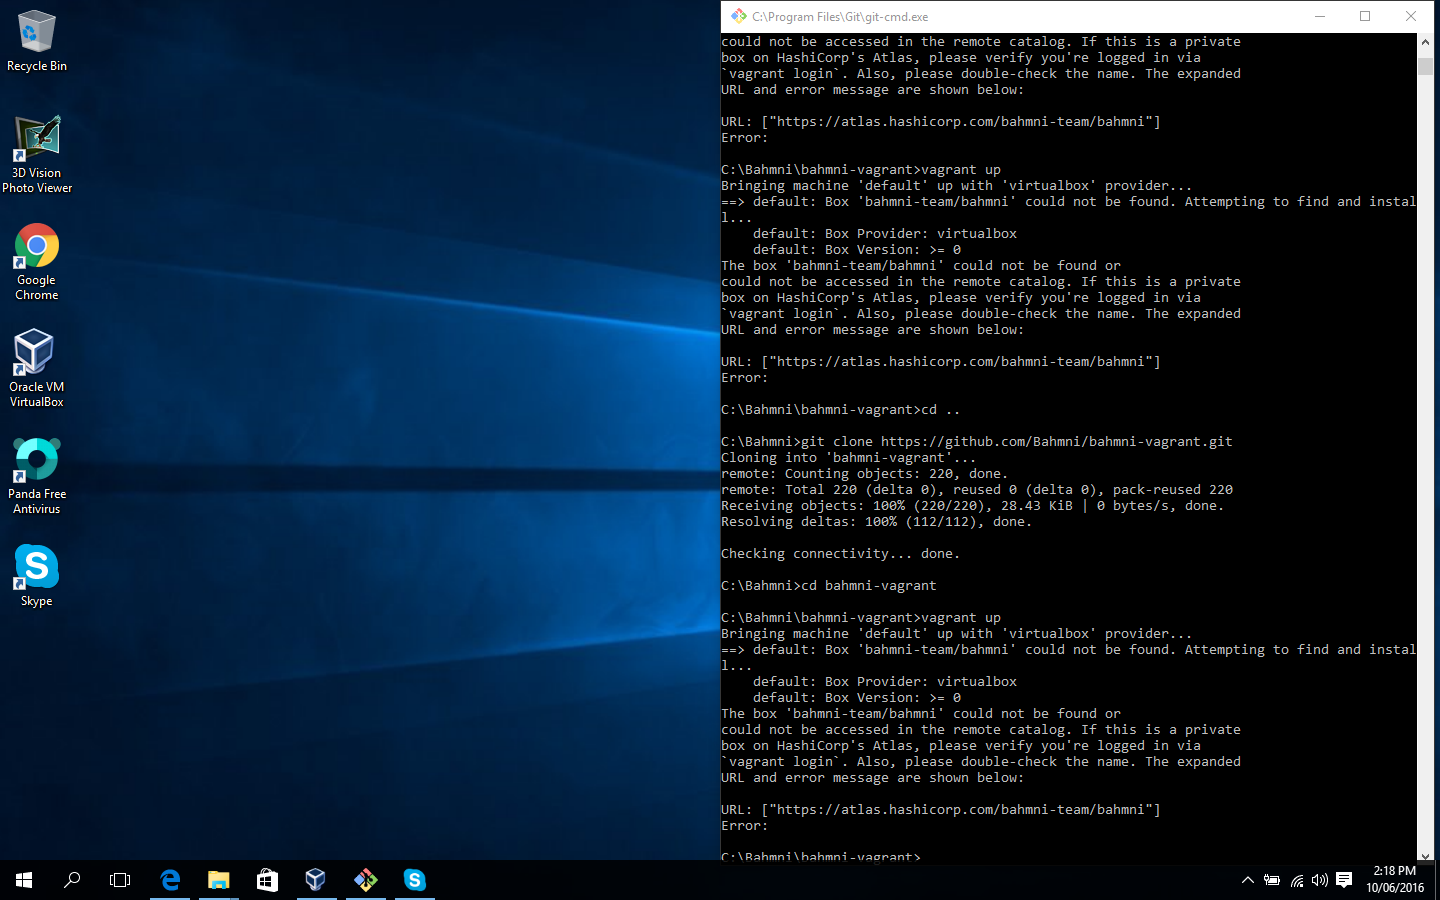 Unable to download Vagrant box - cannot find box error (windows 10